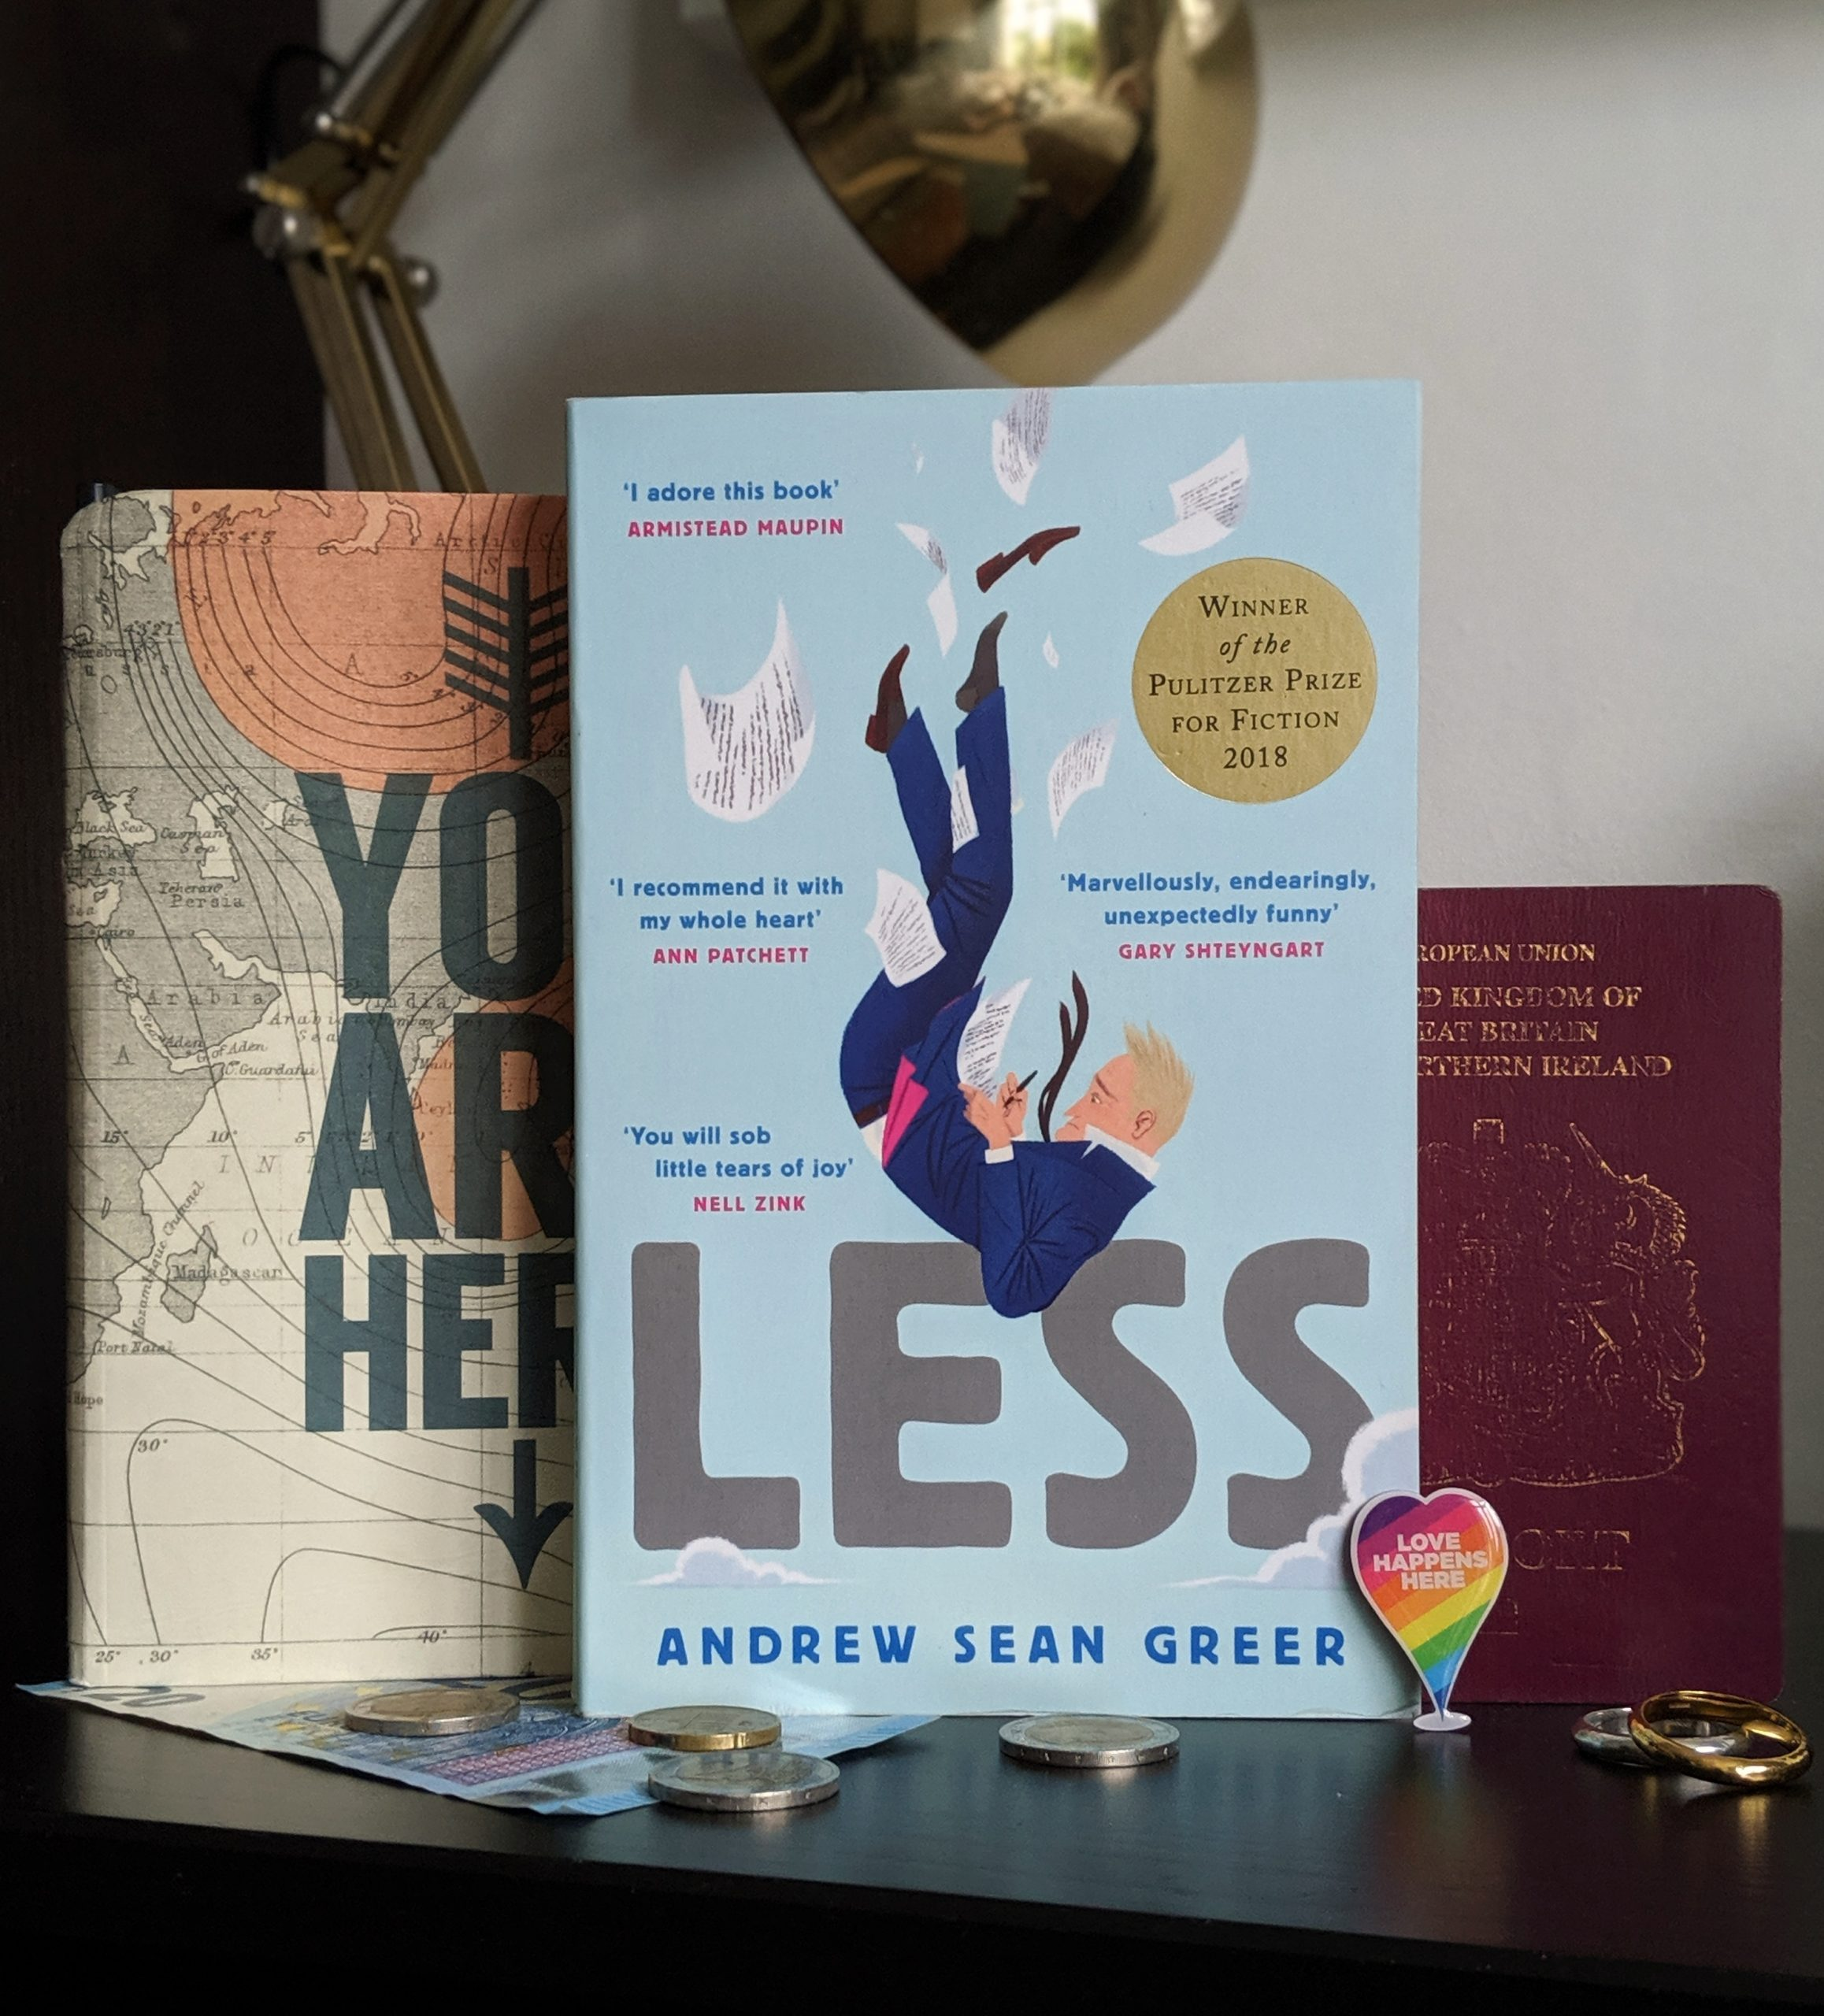 Quarter-Life Crisis Books: Andrew Sean Greer's book, Less, sitting in front of a map and passport.